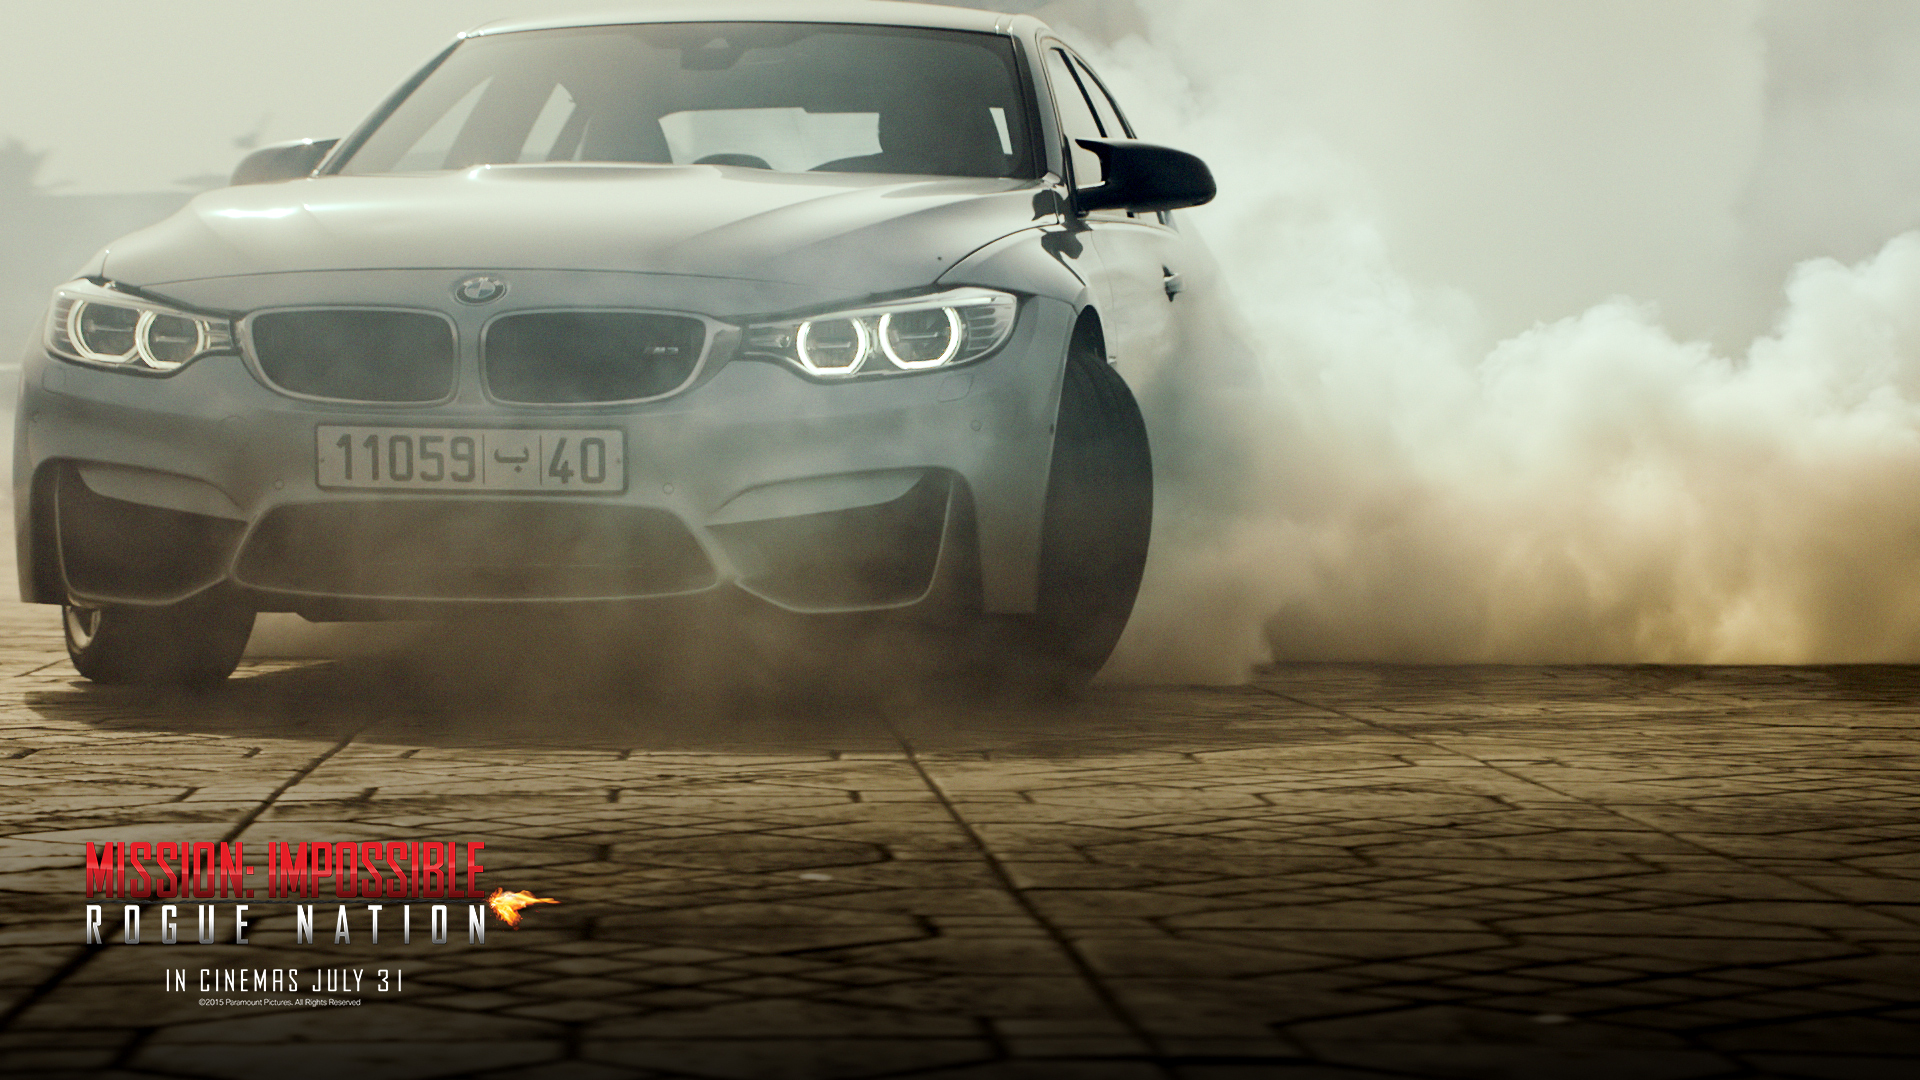 Mission Impossible 5 Wallpaper Und Bmw Filme Zu Rogue Nation